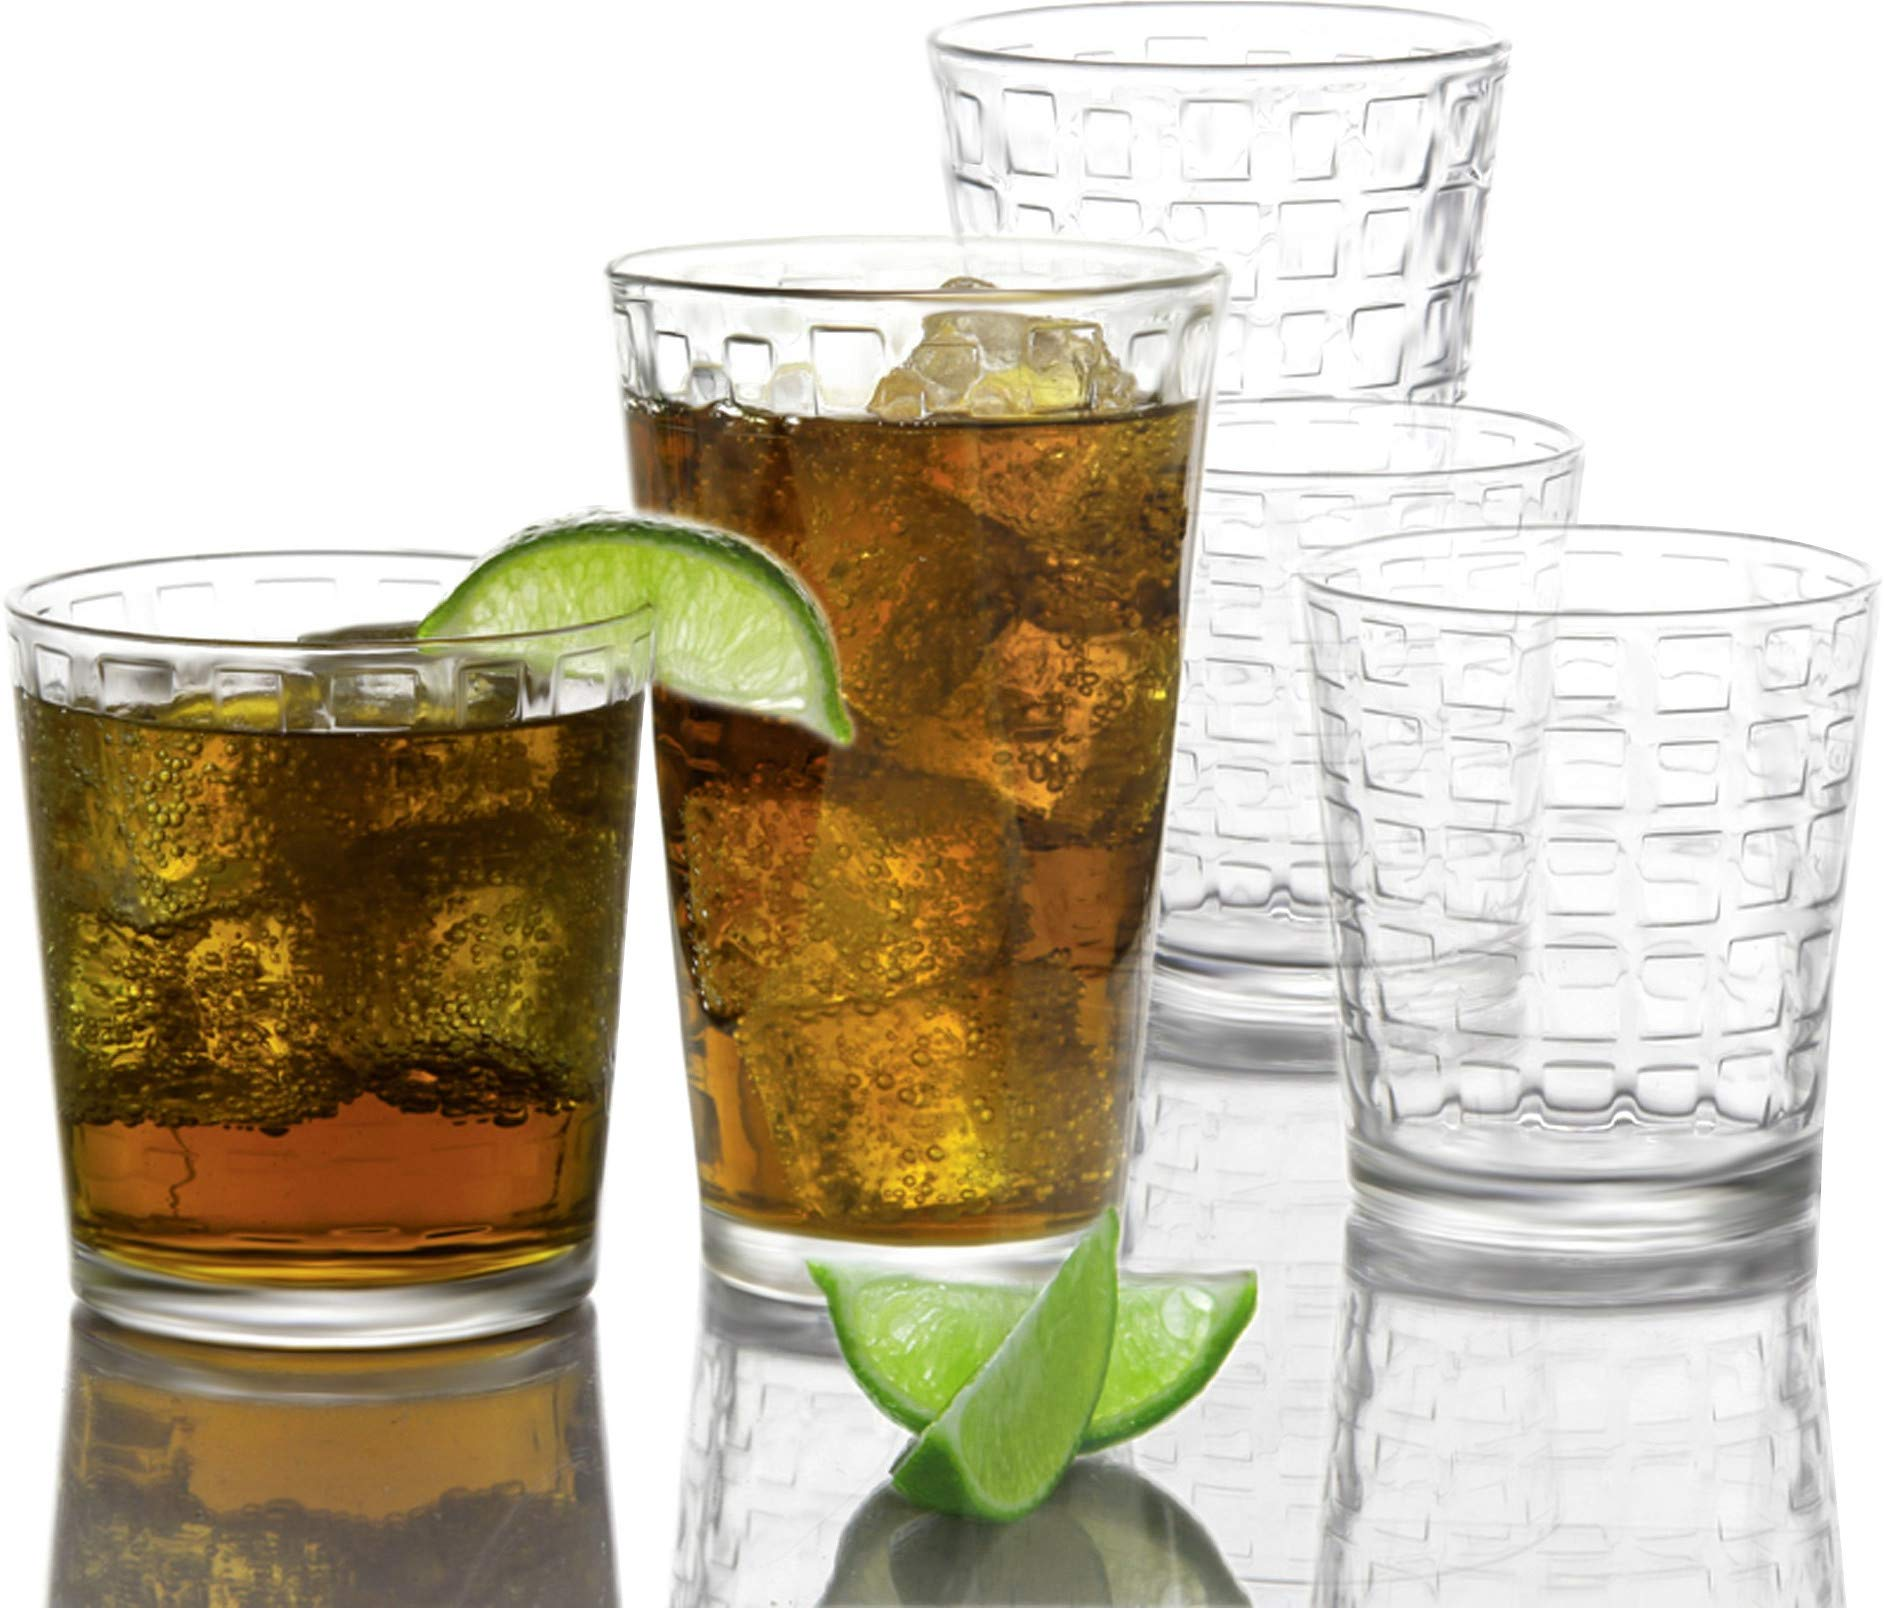 Circleware 40208 Blocks Huge Set of 12, Highball Tumbler Drinking Glasses and Whiskey Cups, Glassware for Water, Beer, Ice Tea Juice Beverage, 12pc